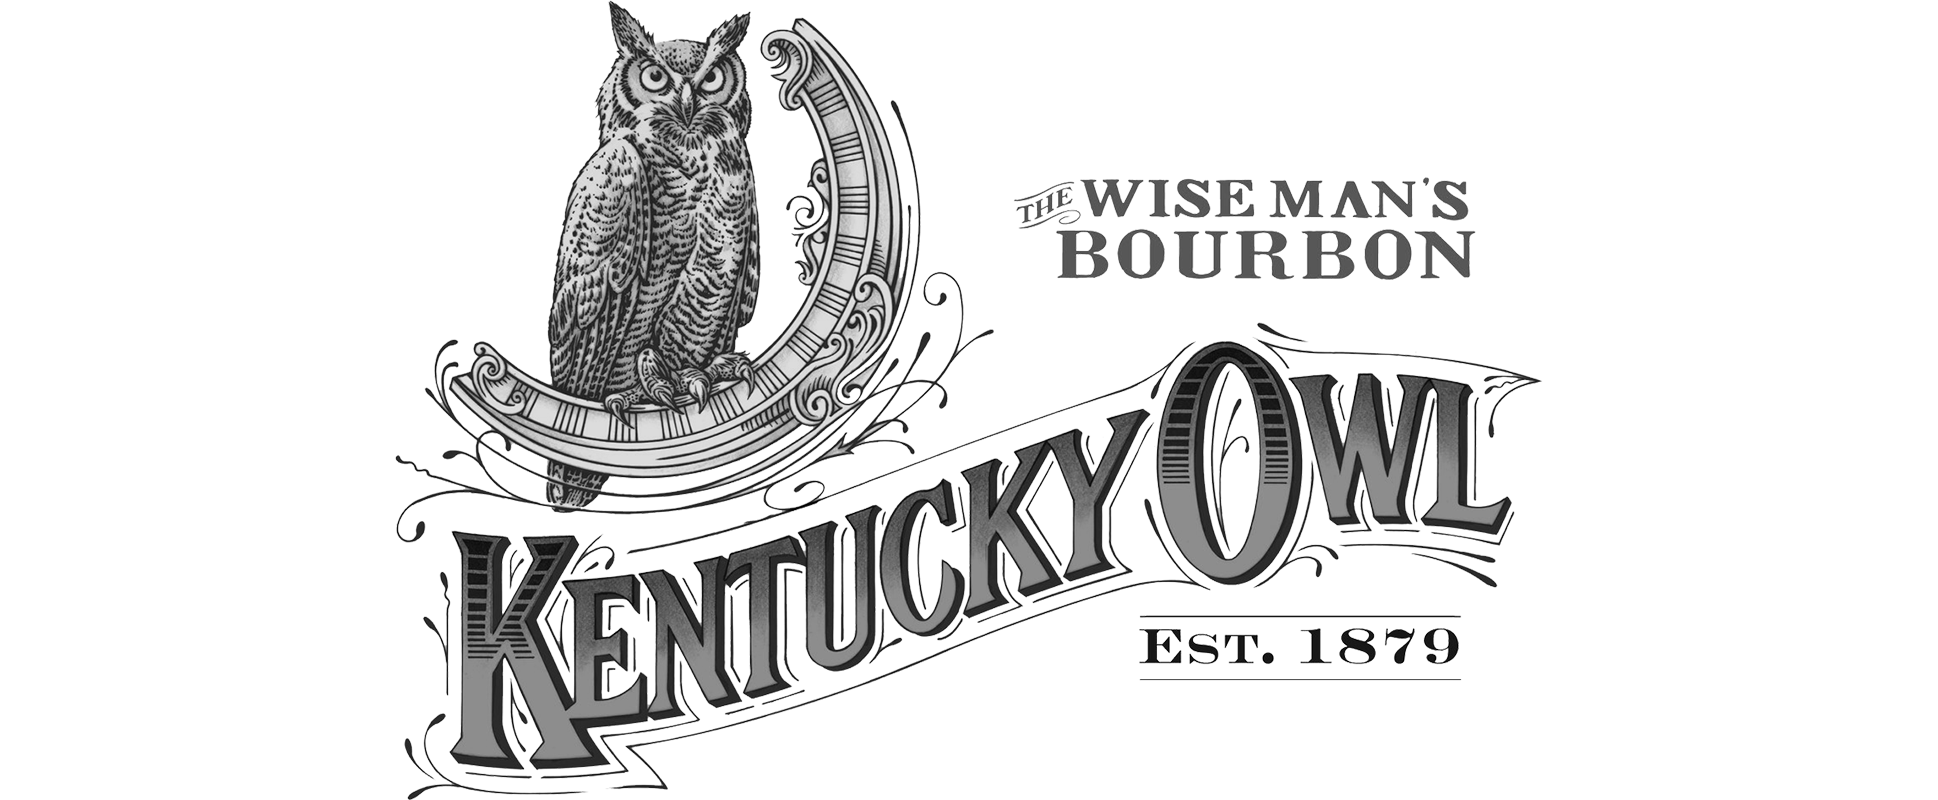 Kentucky Owl Bourbon logo